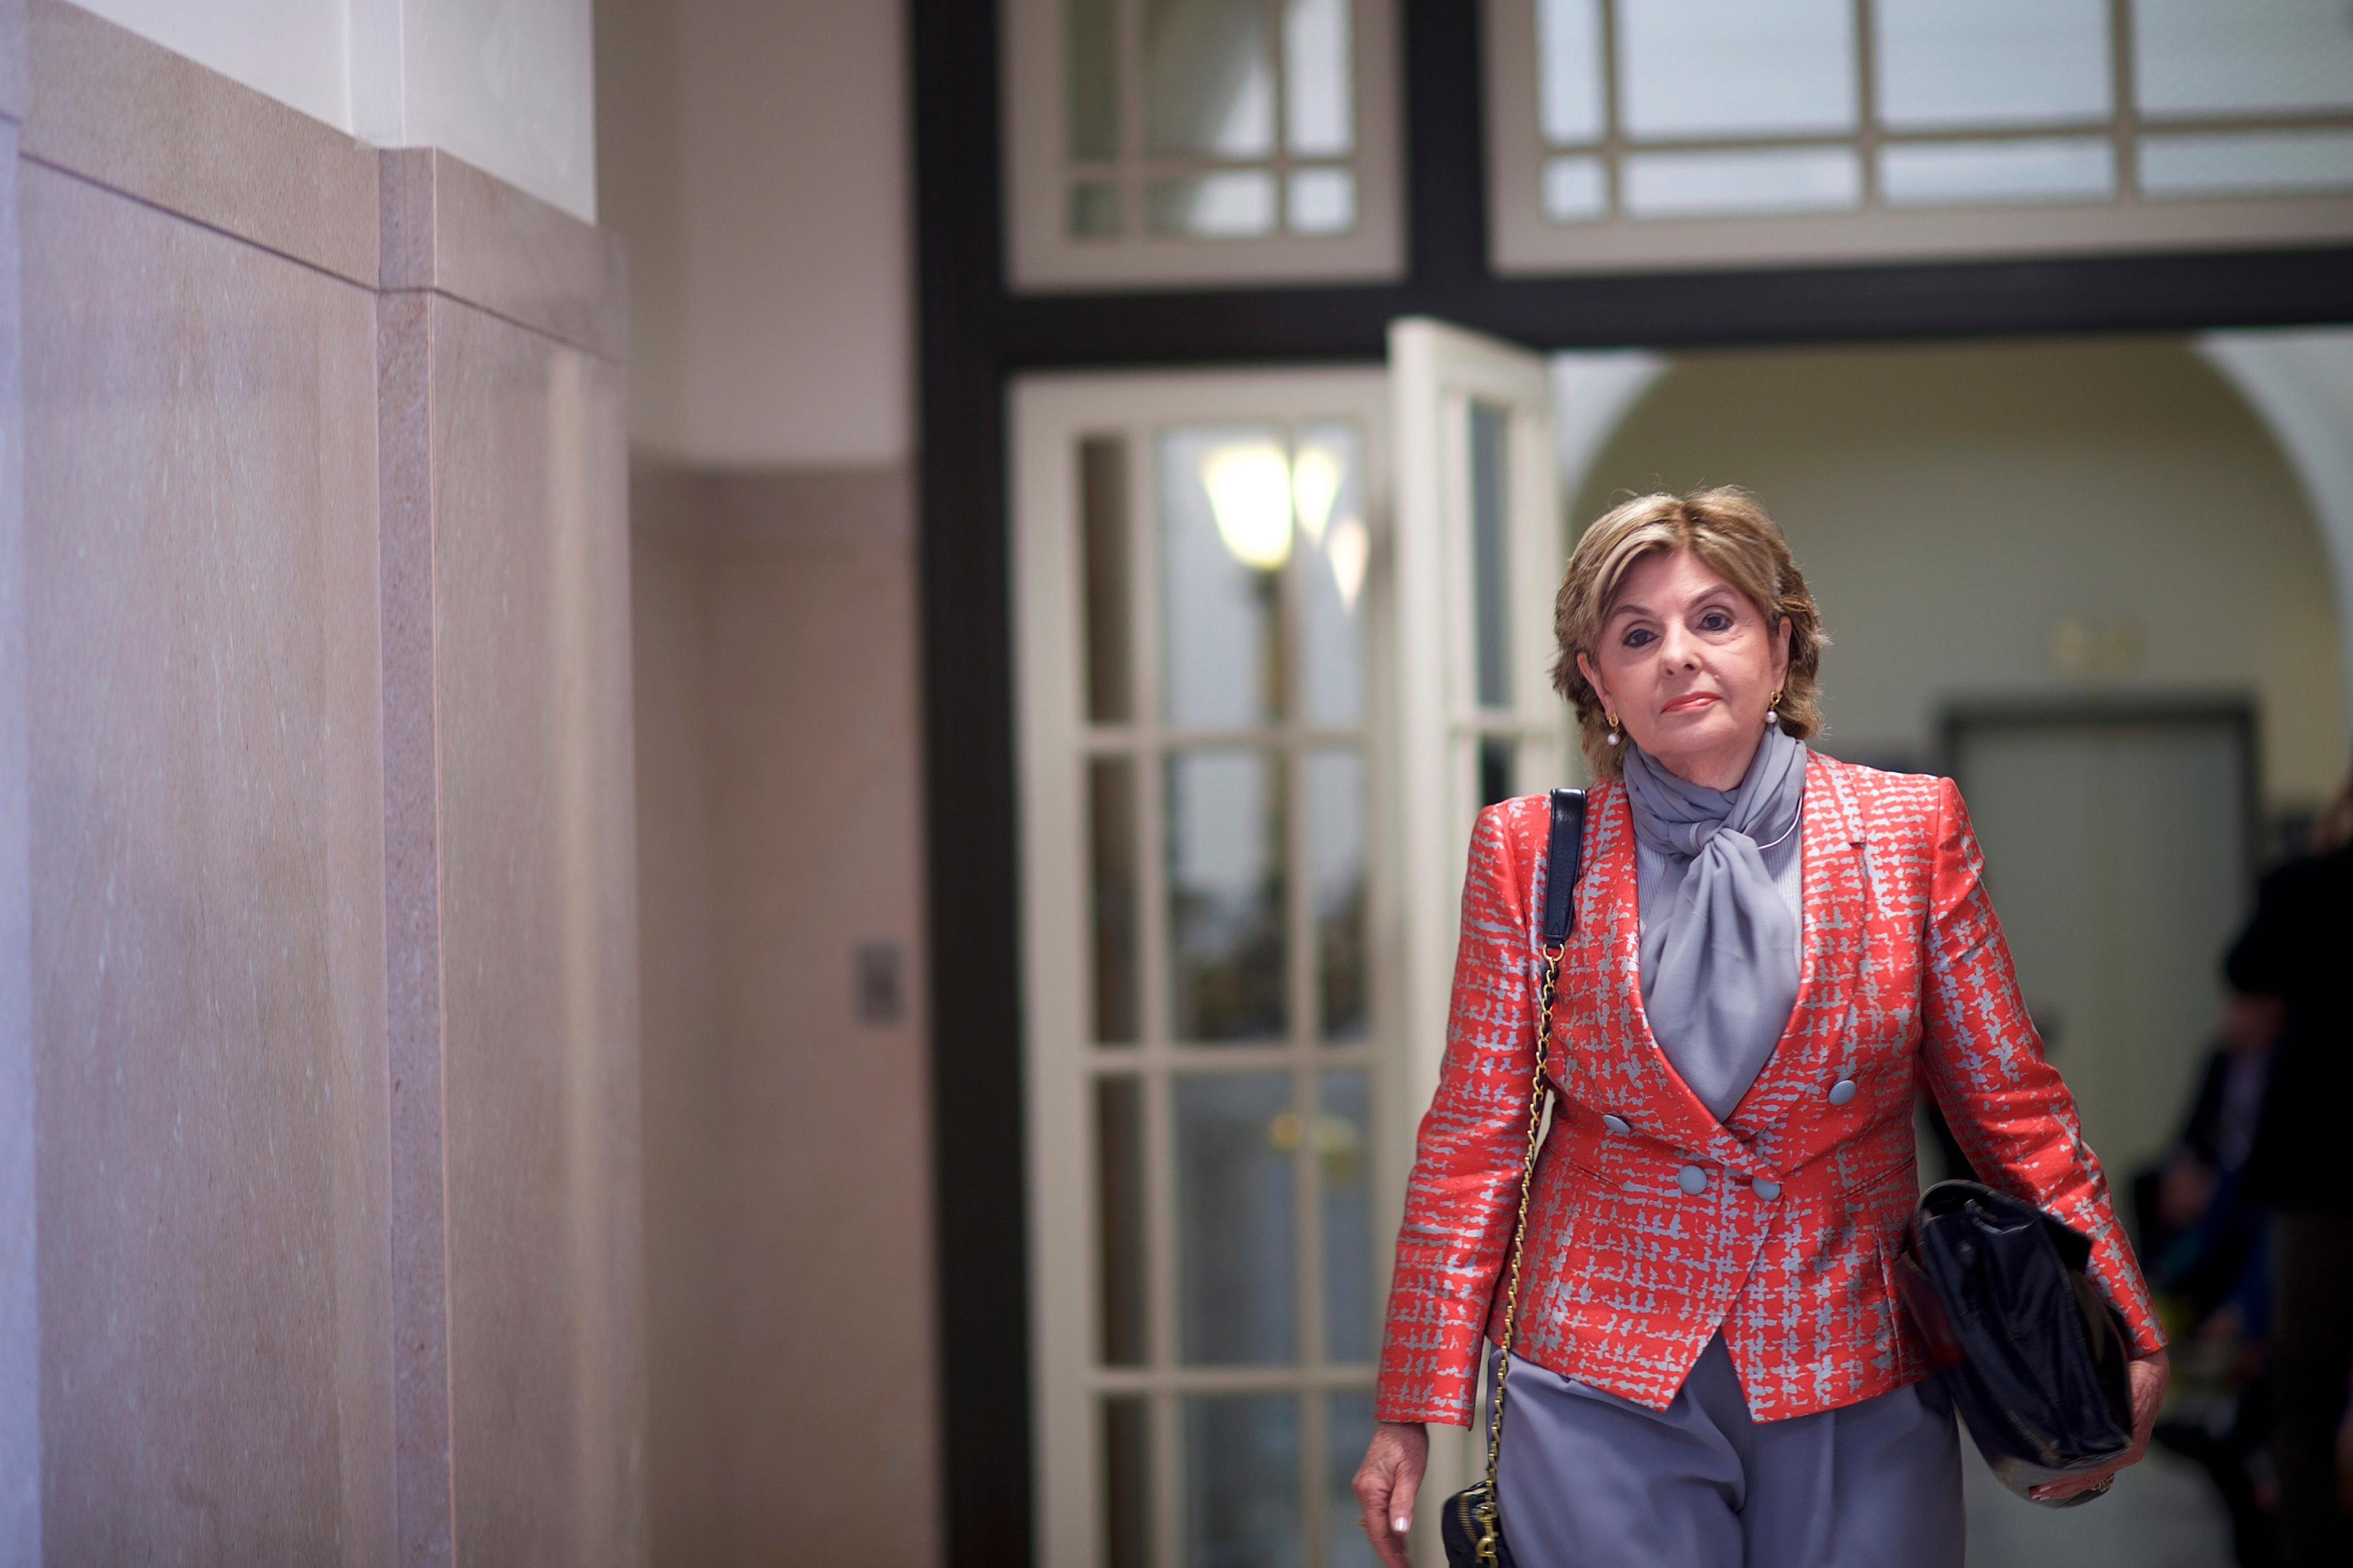 Attorney Gloria Allred arrives for jury deliberations in Bill Cosy's sexual assault trial at the Montgomery County Courthouse in Norristown, Pa., Wednesday, June 14, 2017. (Mark Makela/Pool Photo via AP)